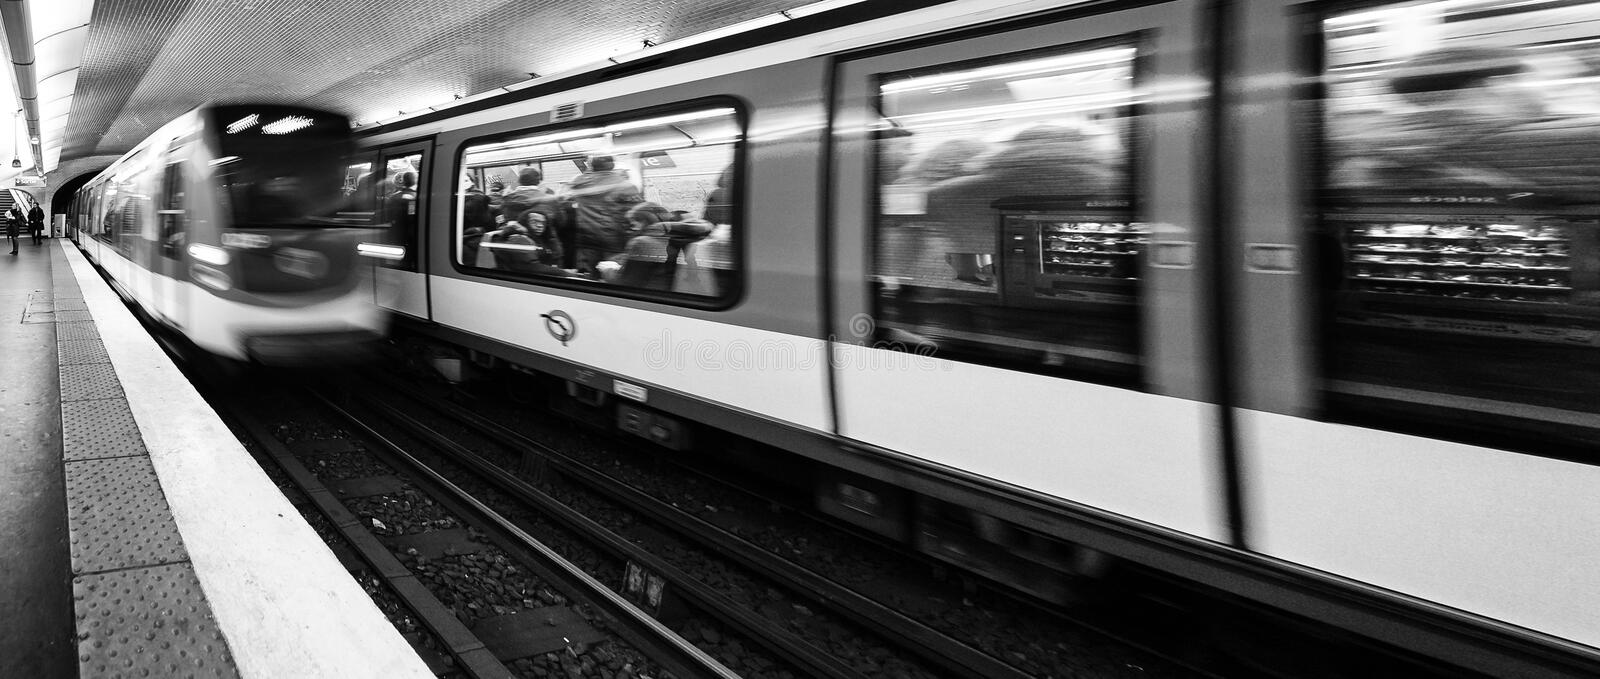 Crossing of trains in a Paris metro station. Paris, France - January 5, 2018: Crossing of trains in a Paris metro station stock photo